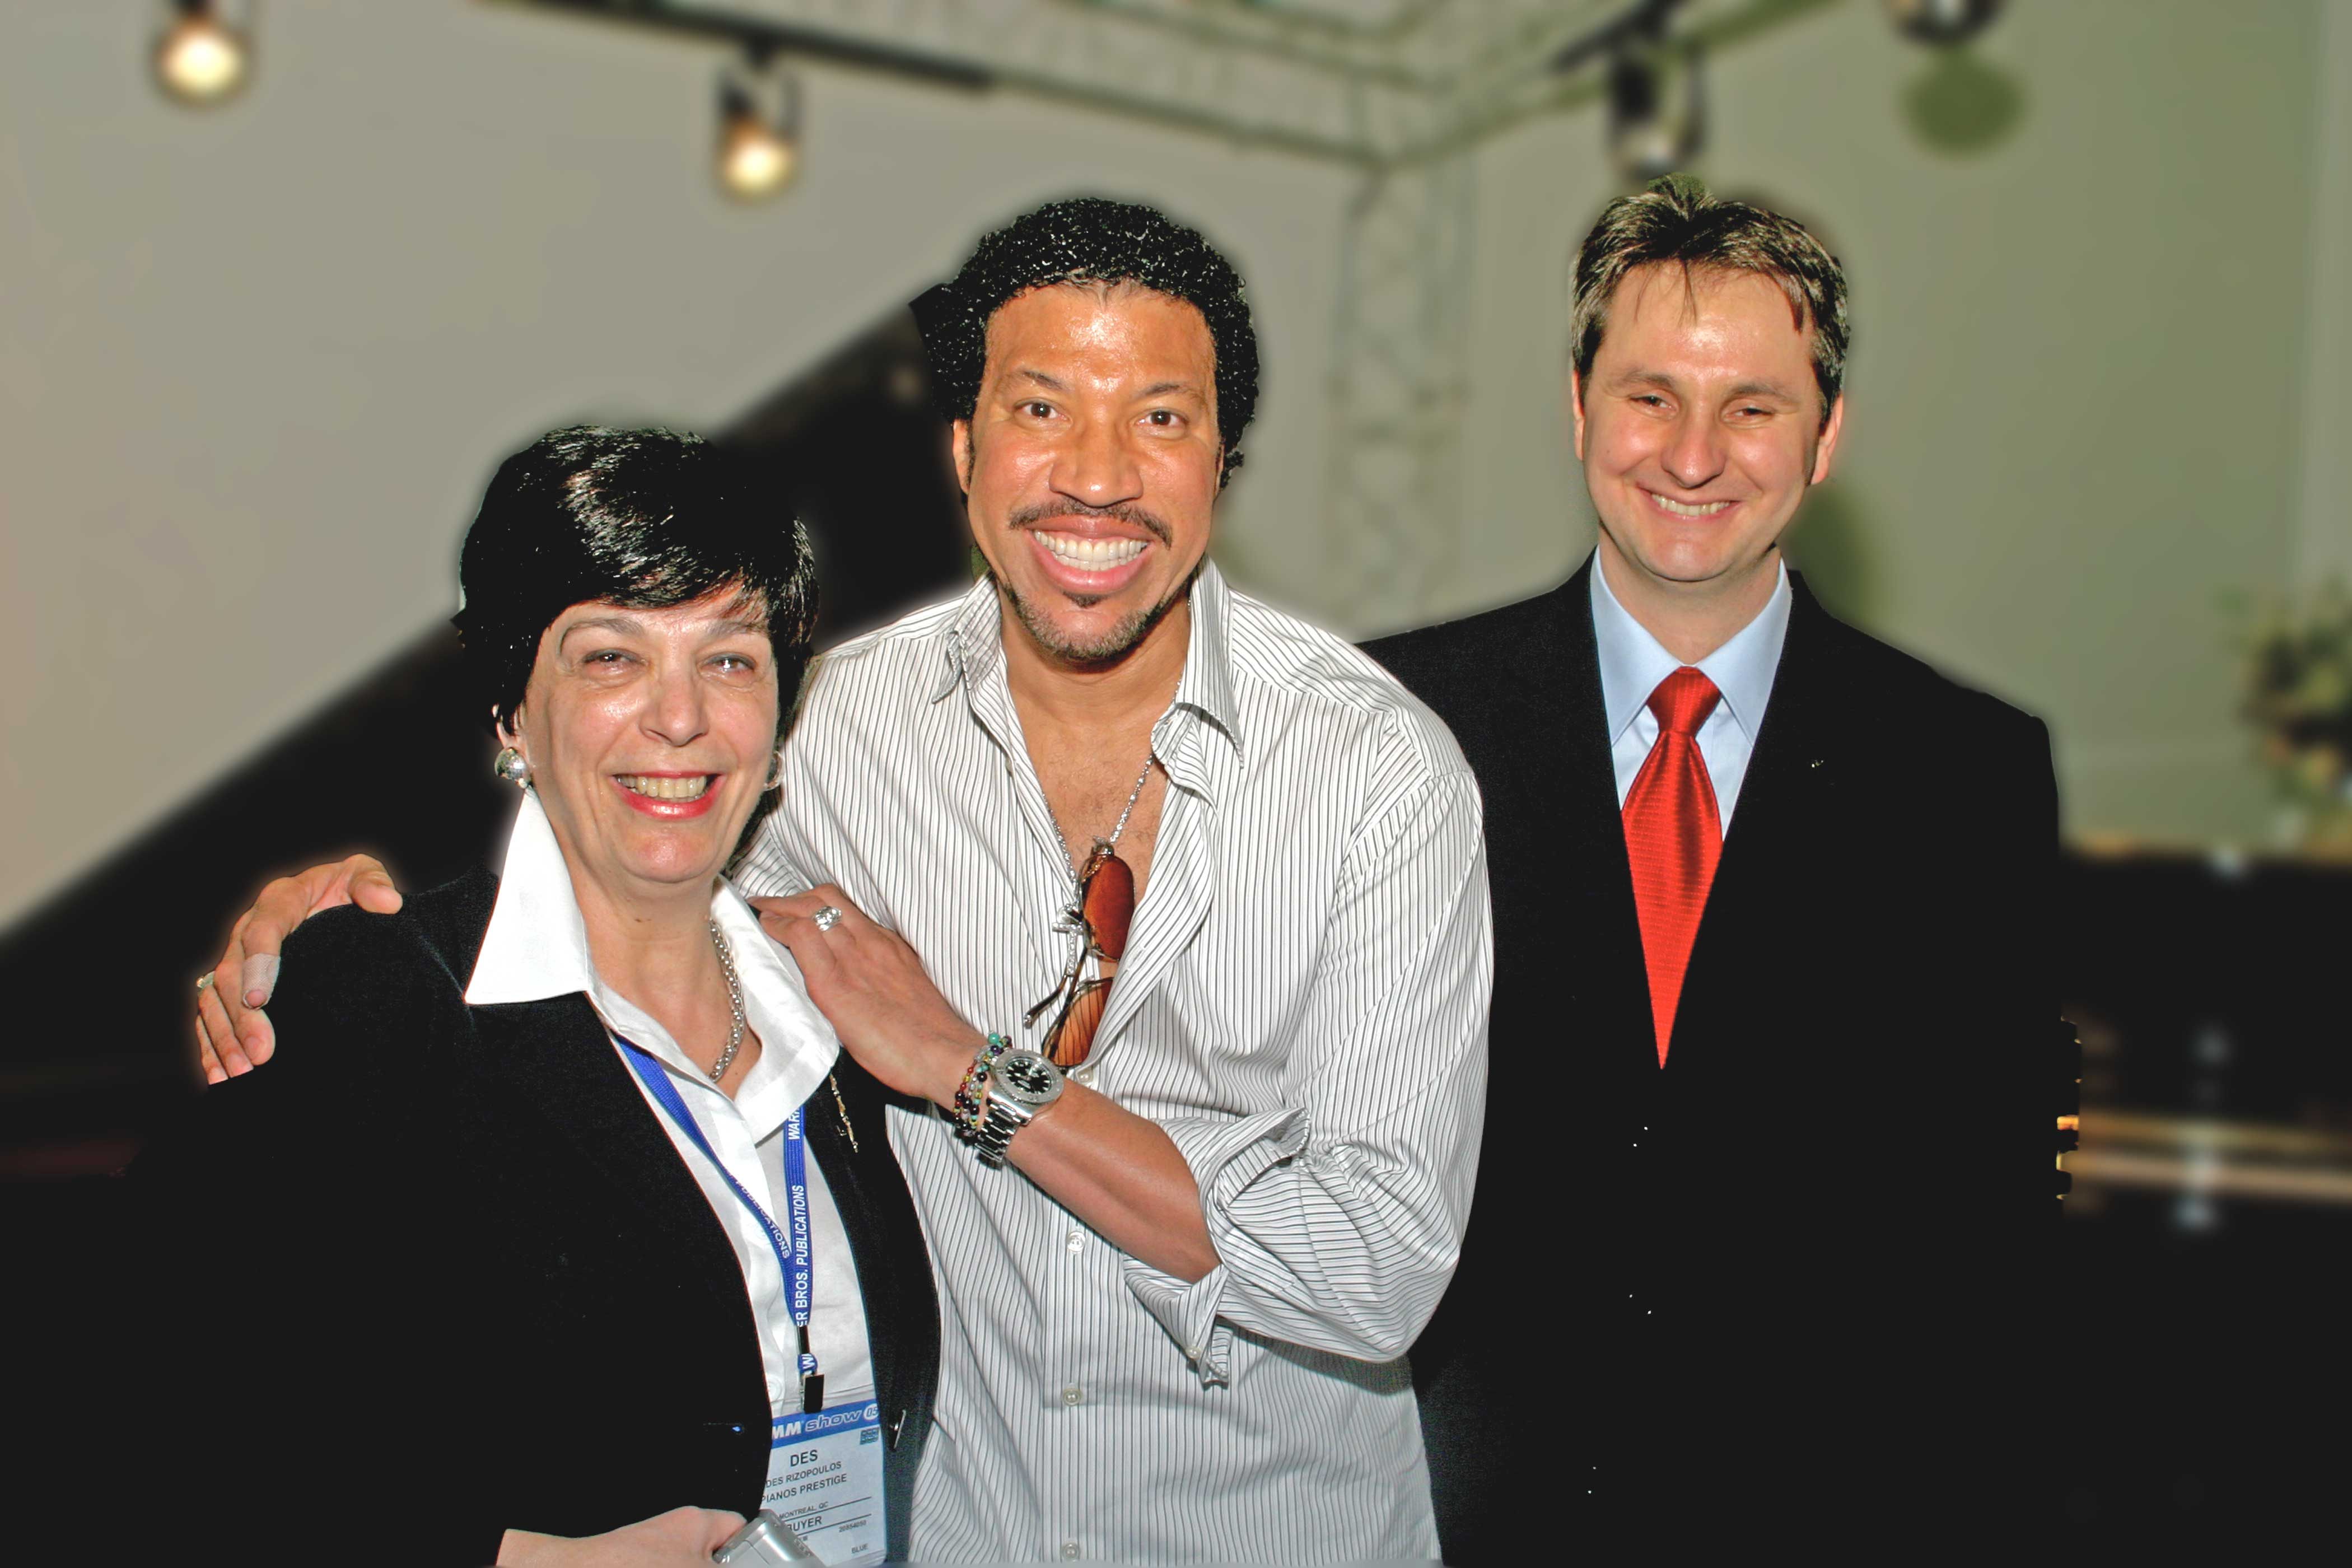 with Lionel Richie and Vasillios St